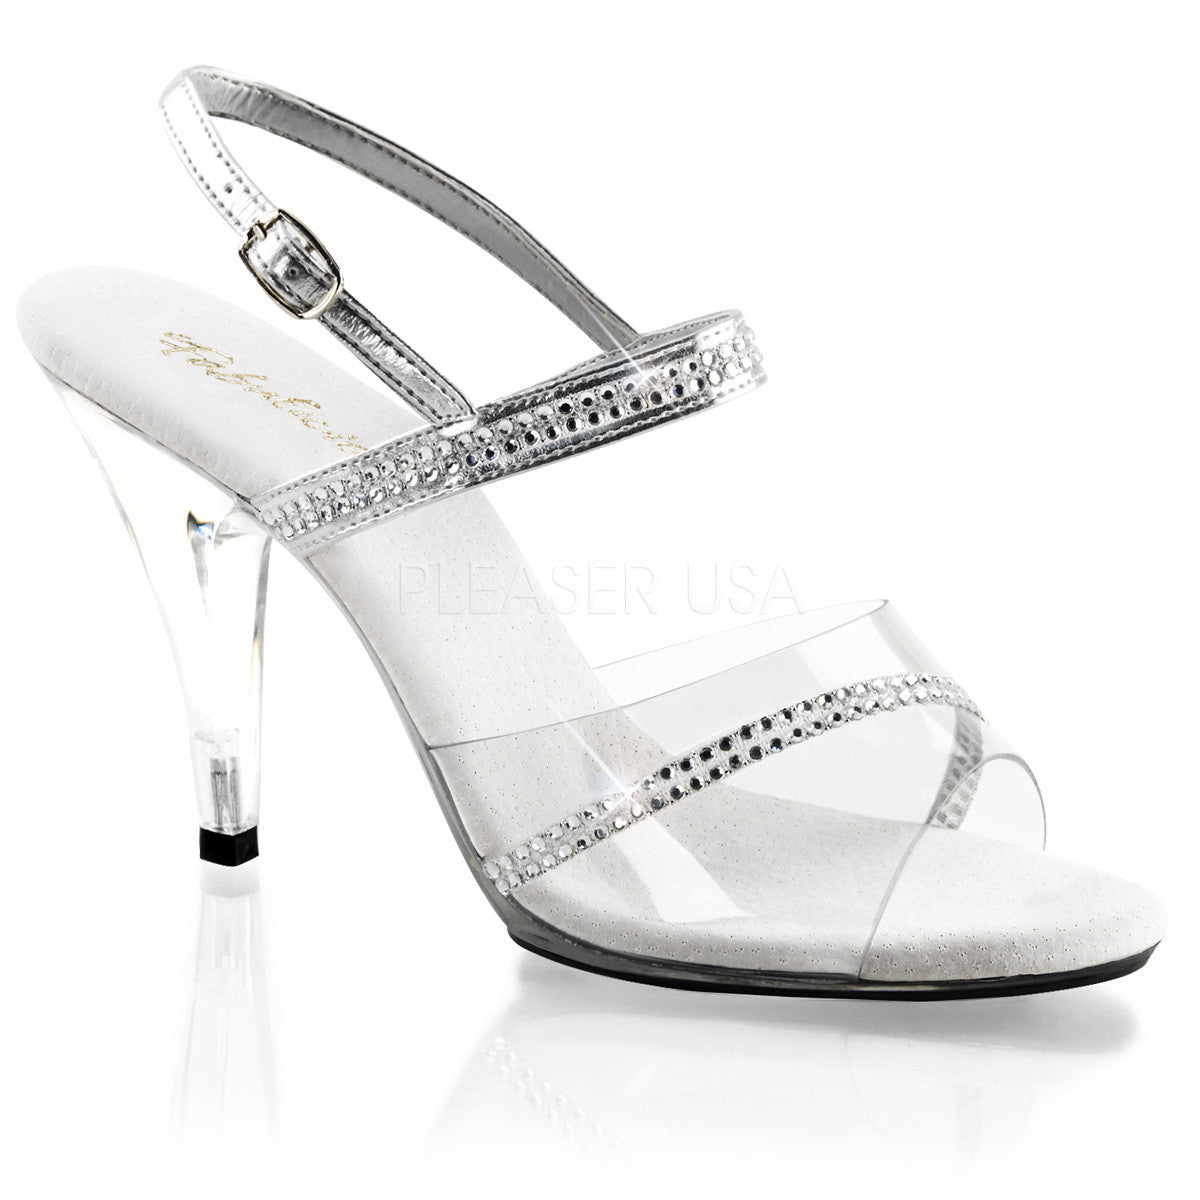 Fabulicious,FABULICIOUS CARESS-439 Clear-Silver Metallic Pu-Clear Slides - Shoecup.com